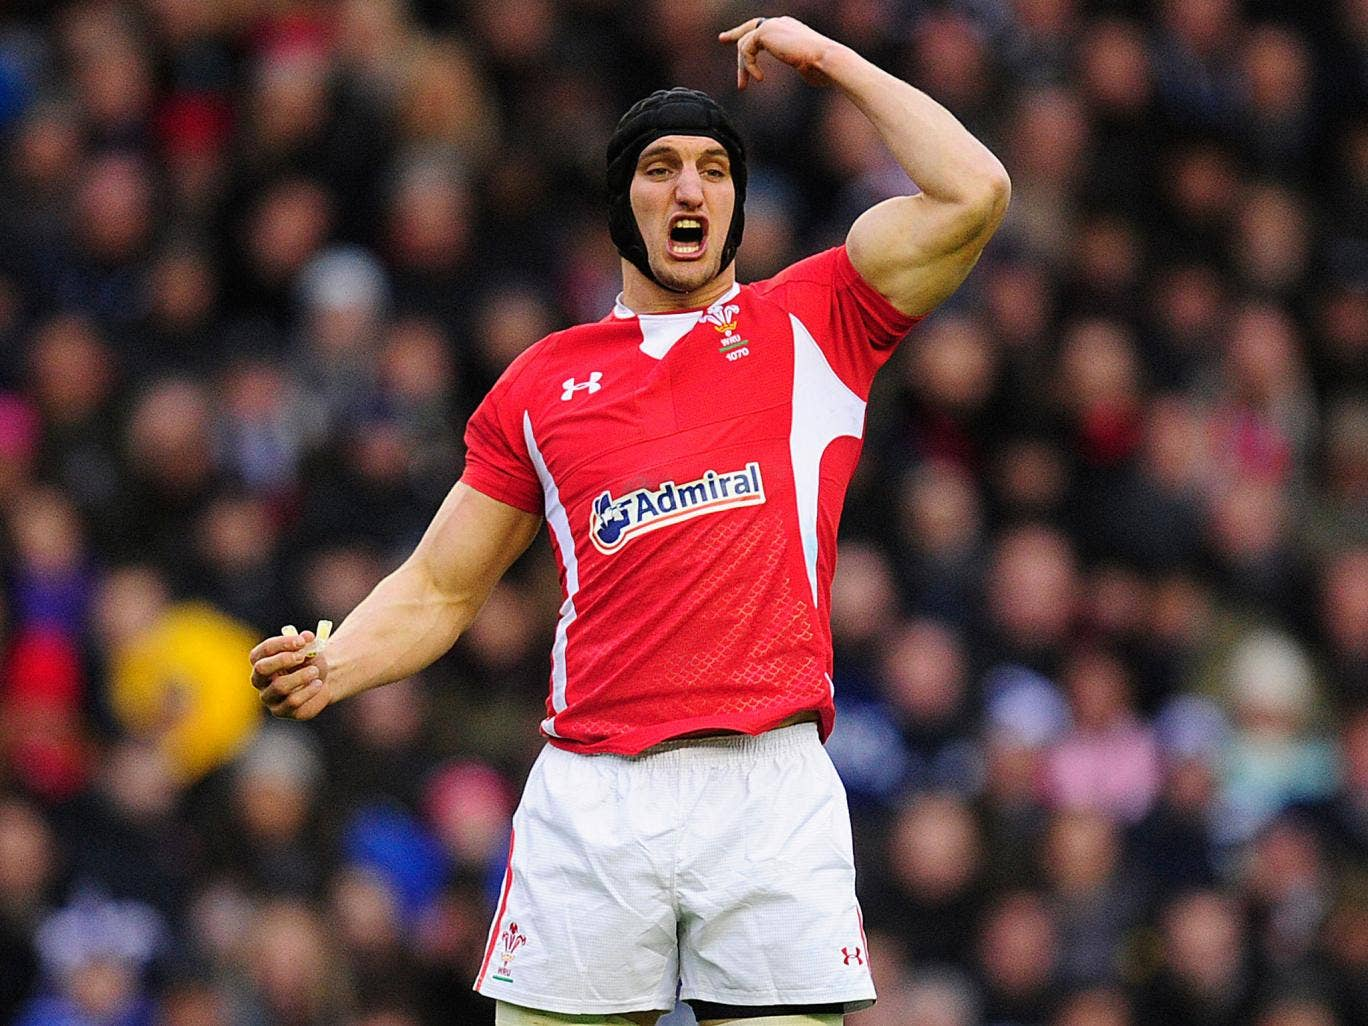 <b>7. Sam Warburton (Wales):</b><br/>Two weeks ago, he was in danger of being permanently replaced by Justin Tipuric and missing out on the Lions altogether. Yet after a performance reminiscent of last year's championship, Warburton showed why you should